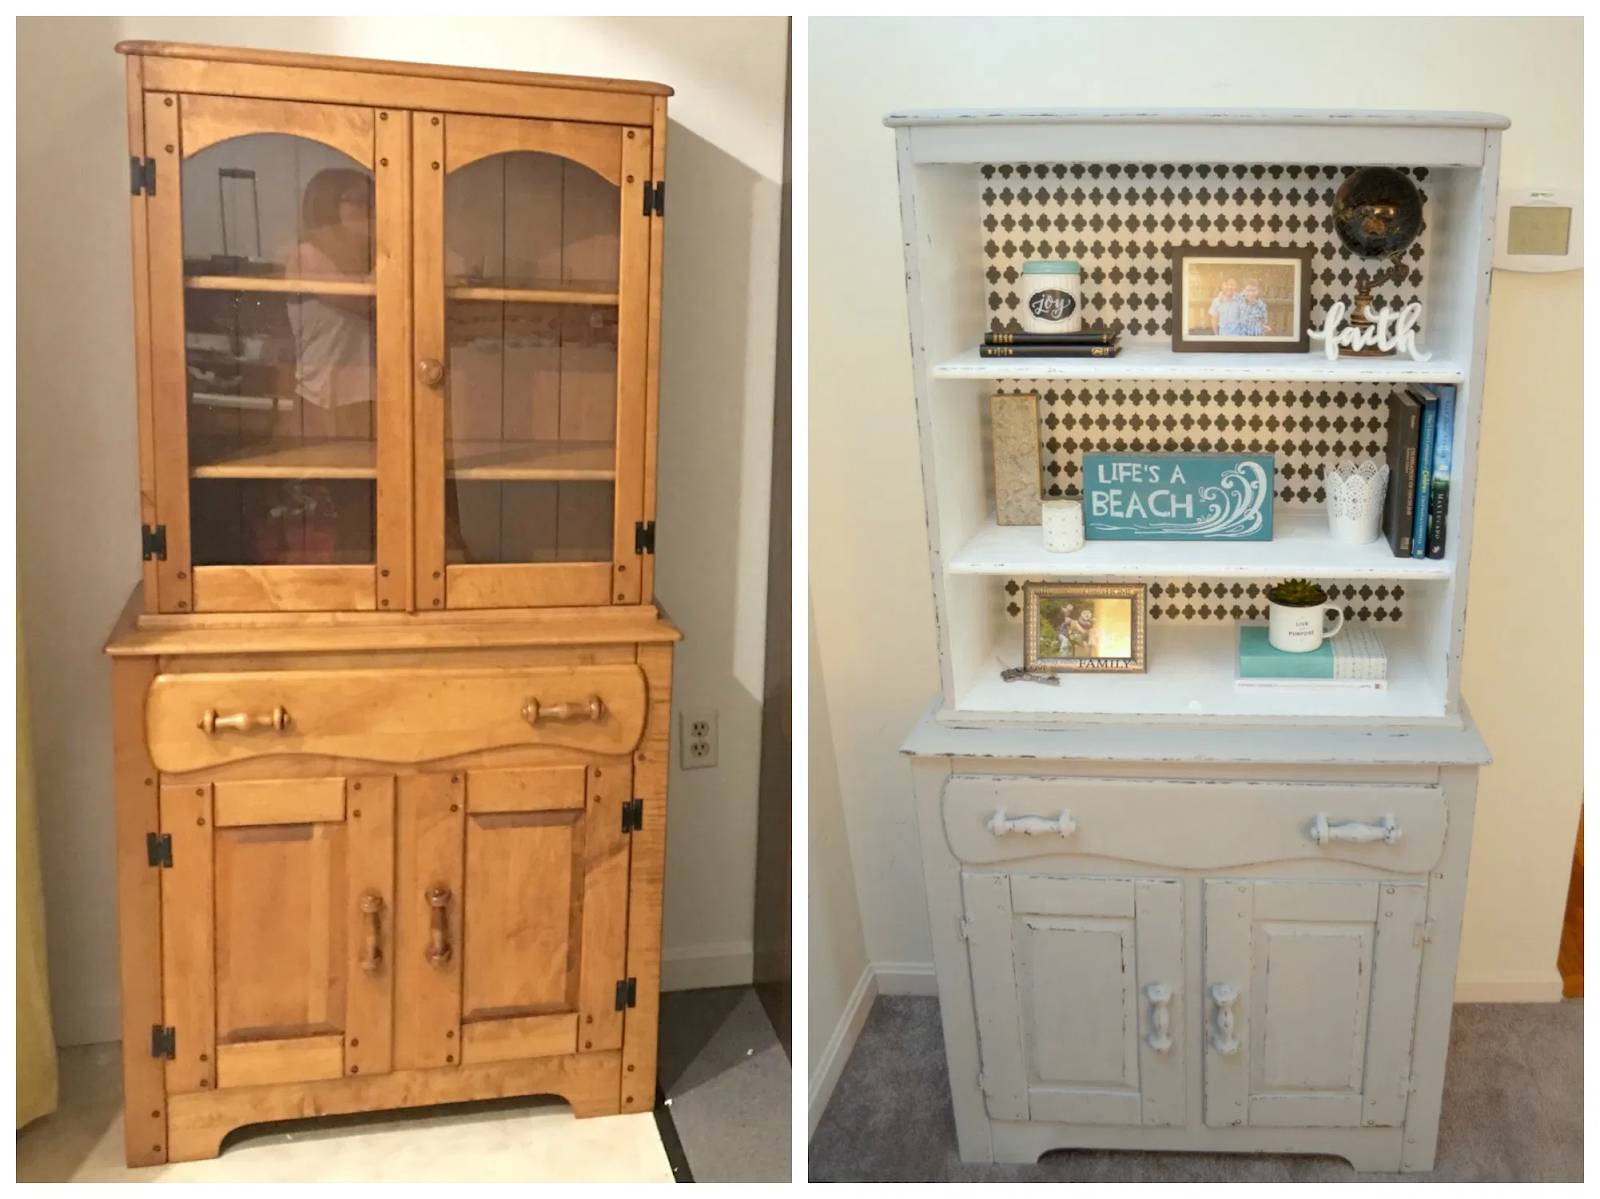 An image showing a dated piece of furniture's makeover.